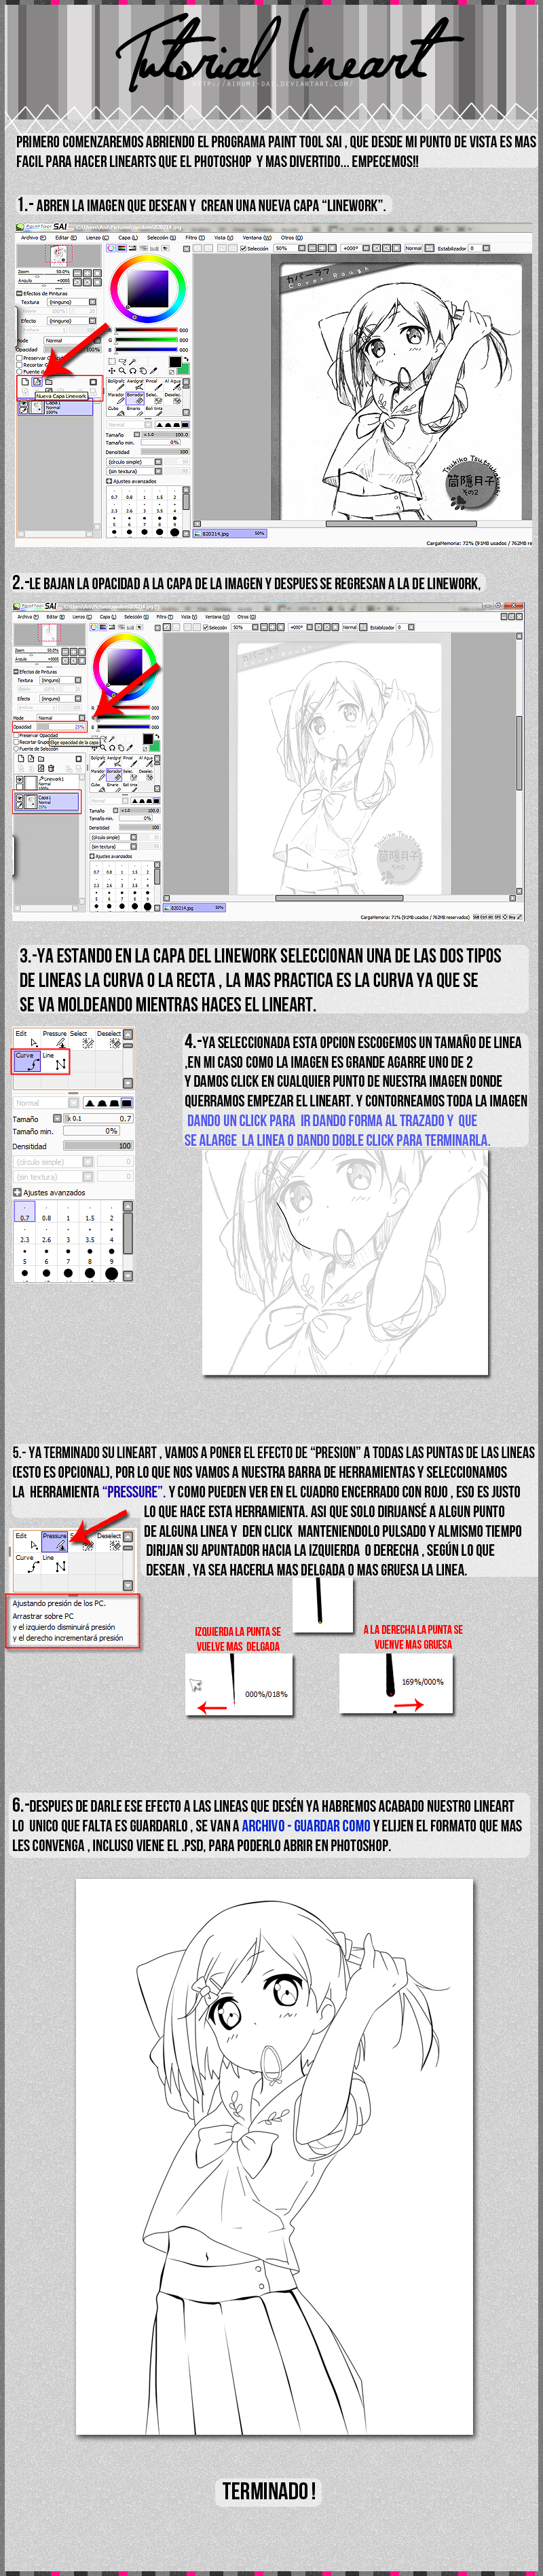 Tutorial lineart en paint tool sai by airumi daiiantart on tutorial lineart en paint tool sai by airumi daiiantart on baditri Choice Image